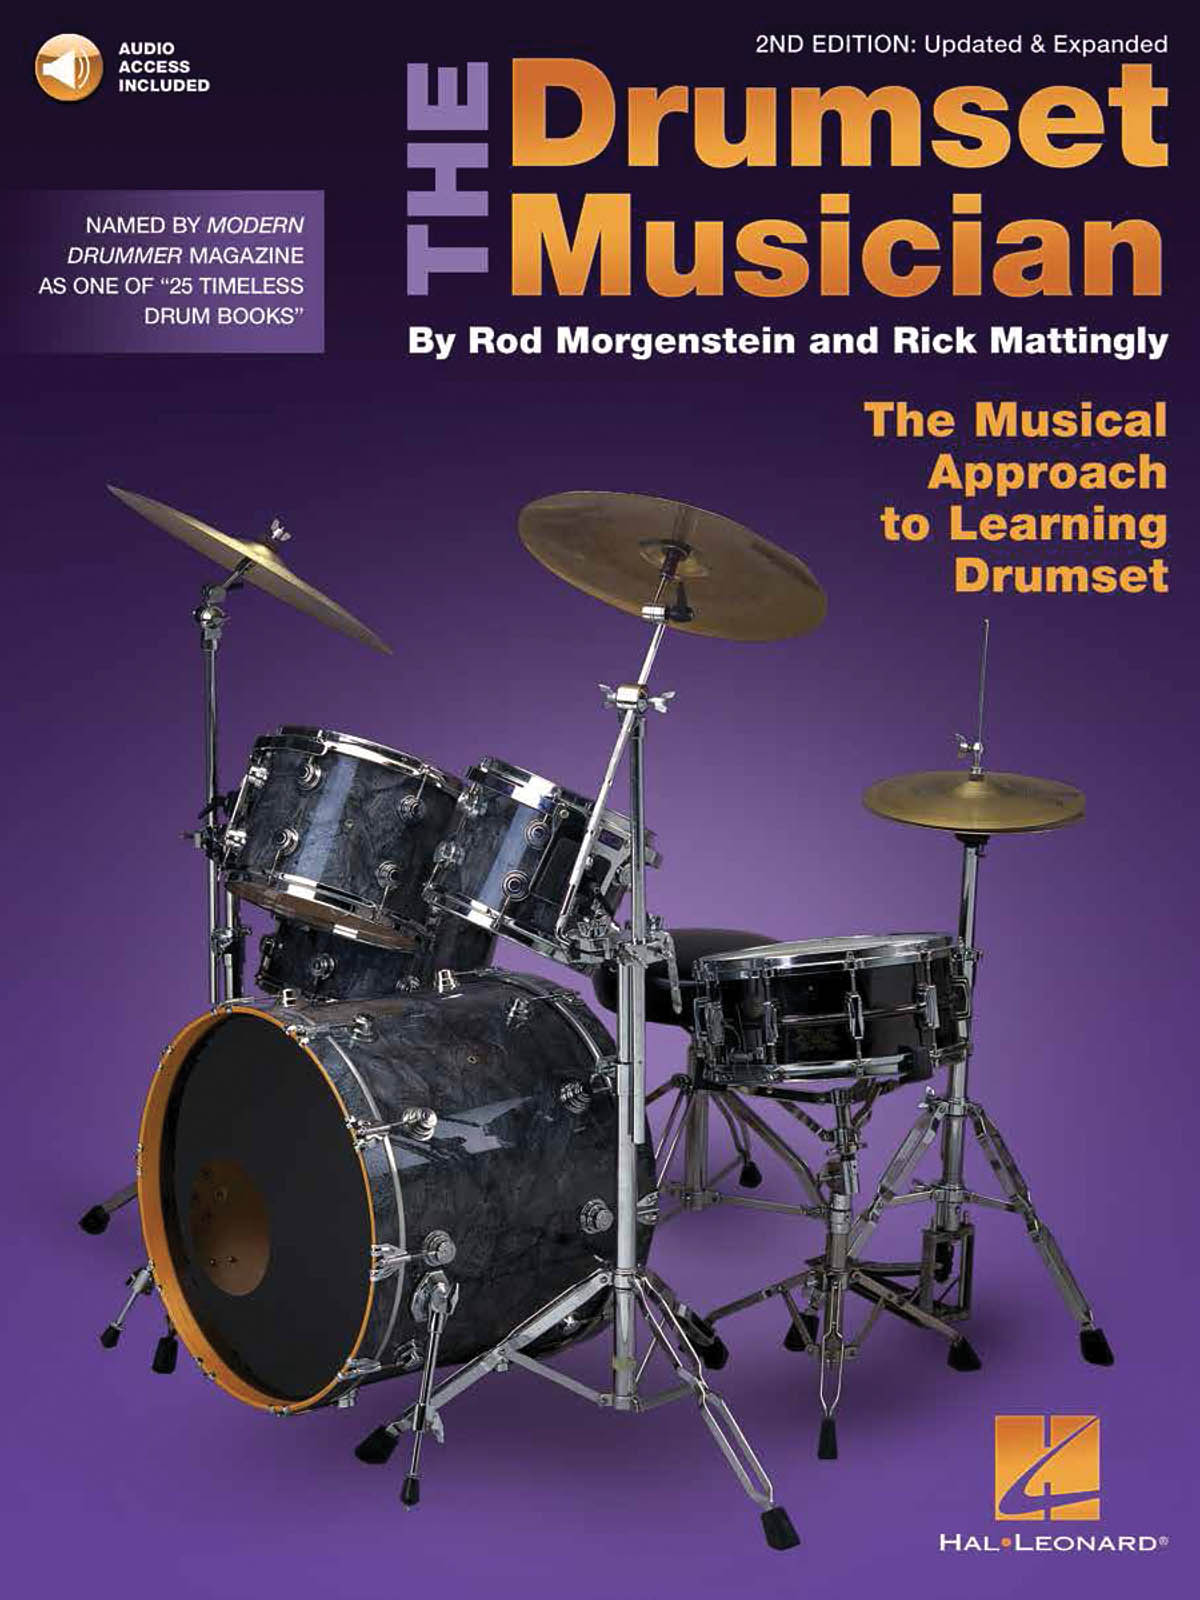 Rod Morgenstein Rick Mattingly: The Drumset Musician - 2nd Edition: Drums: